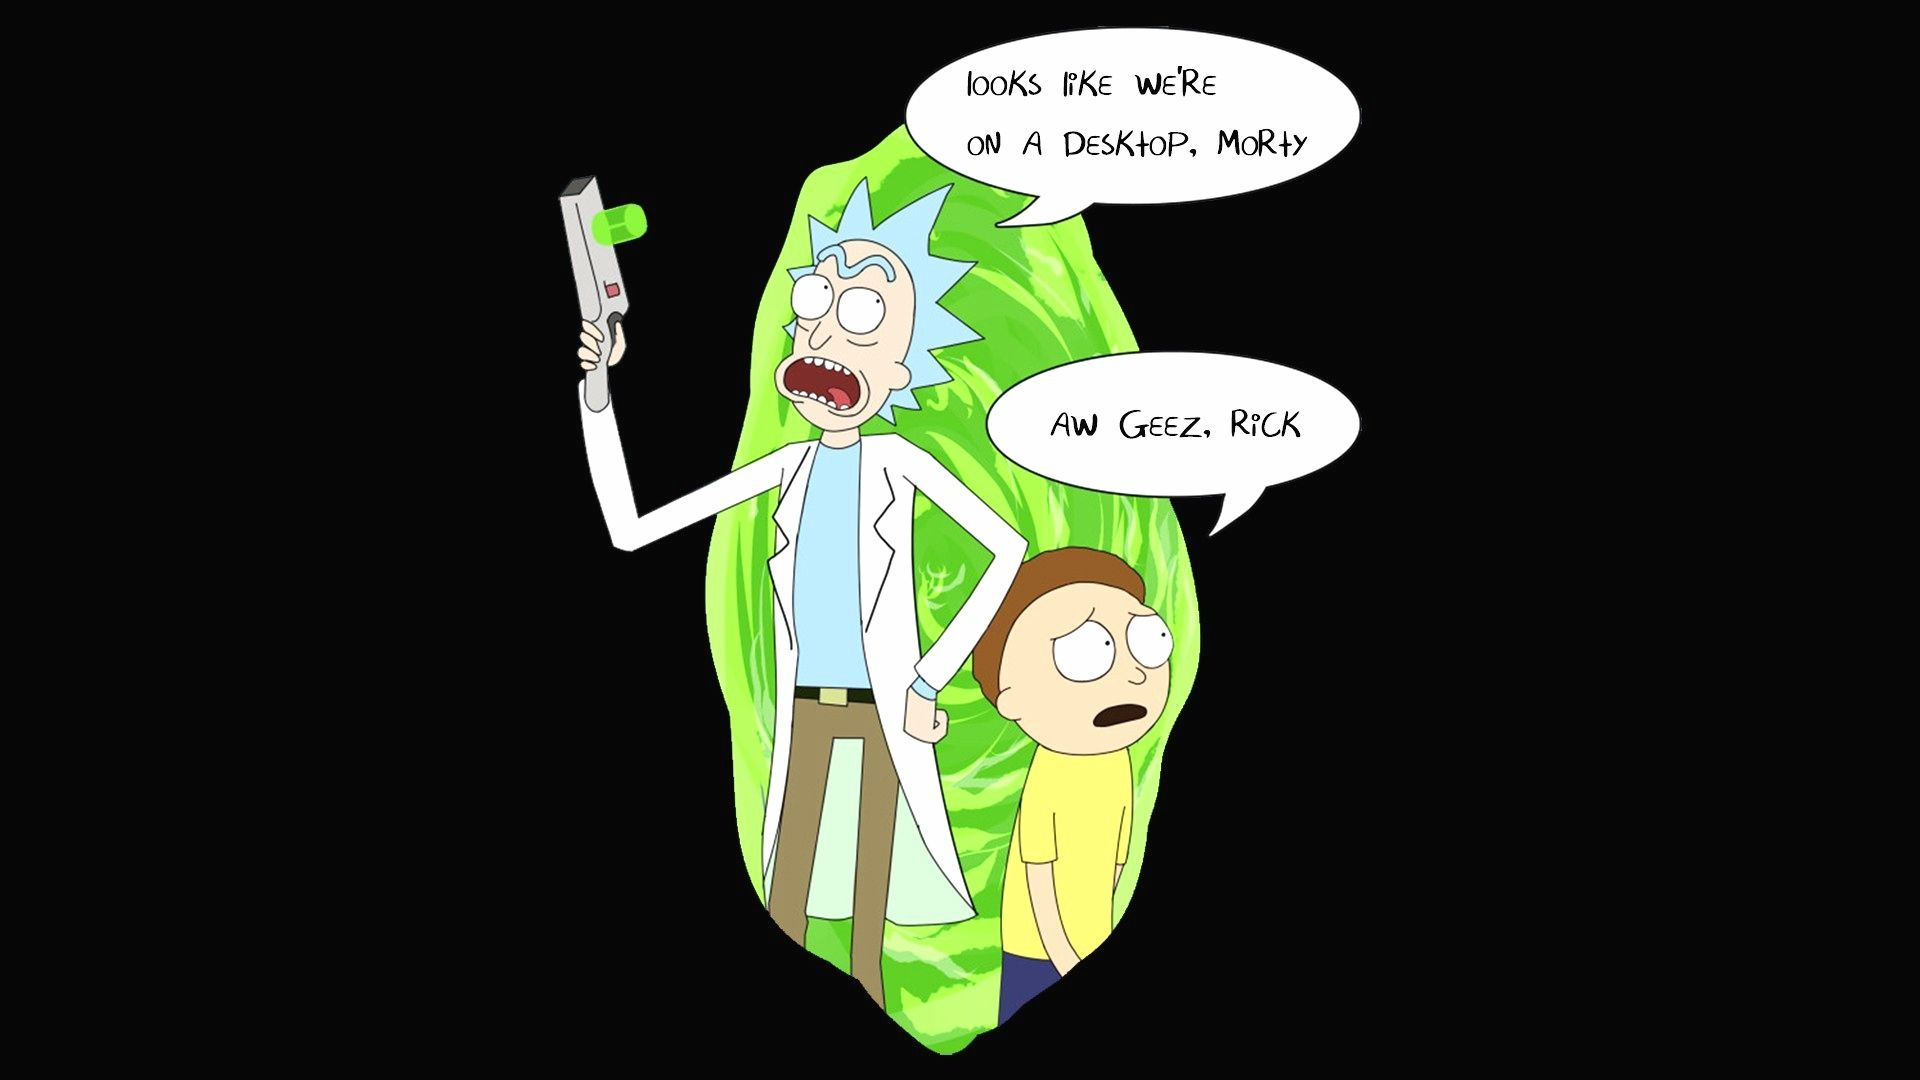 Rick and Morty Wallpapers - Top Free Rick and Morty Backgrounds